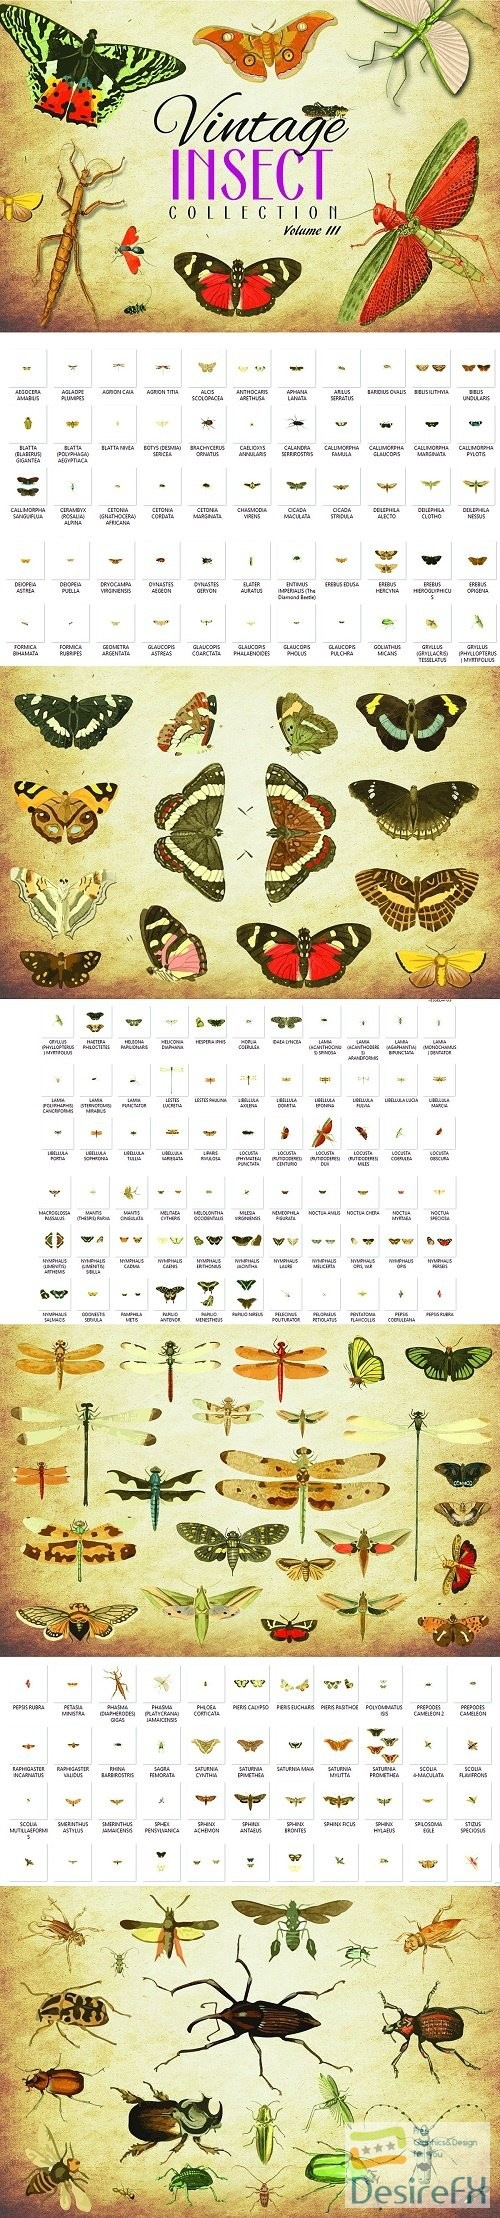 stock-vectors - 172 Vintage Insect Vector Graphics 3 - 3493784